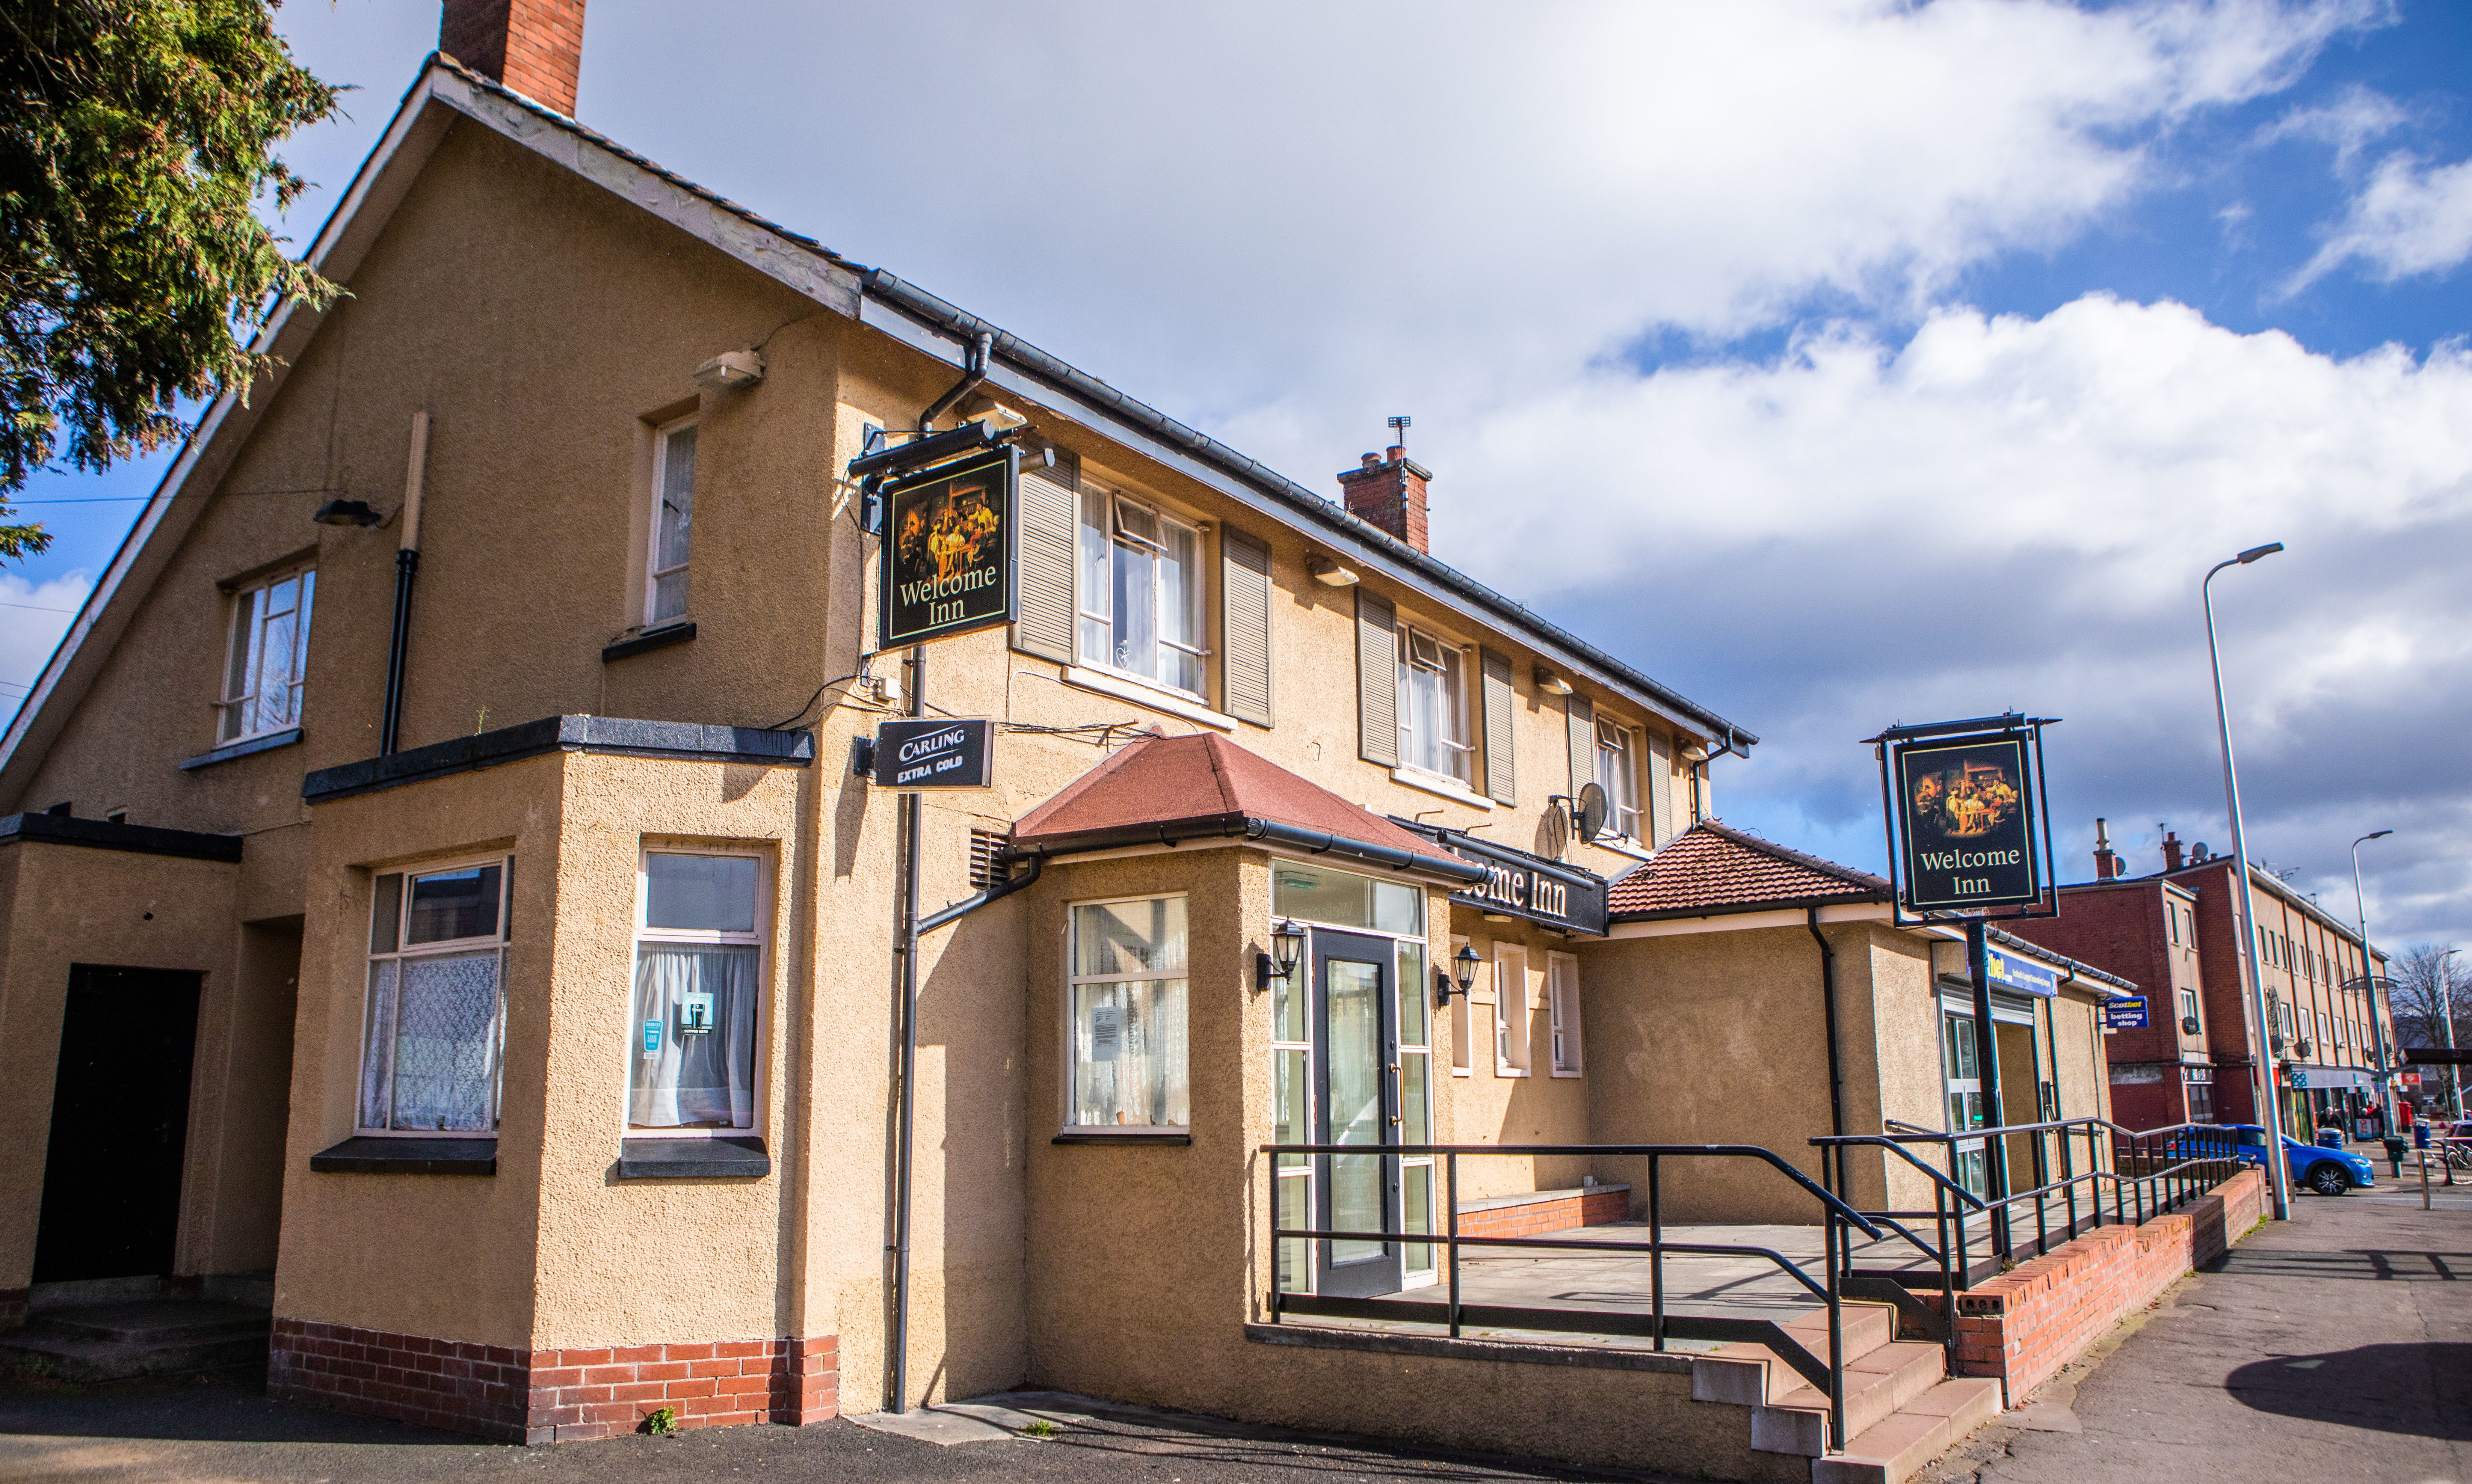 The Welcome Inn in Perth